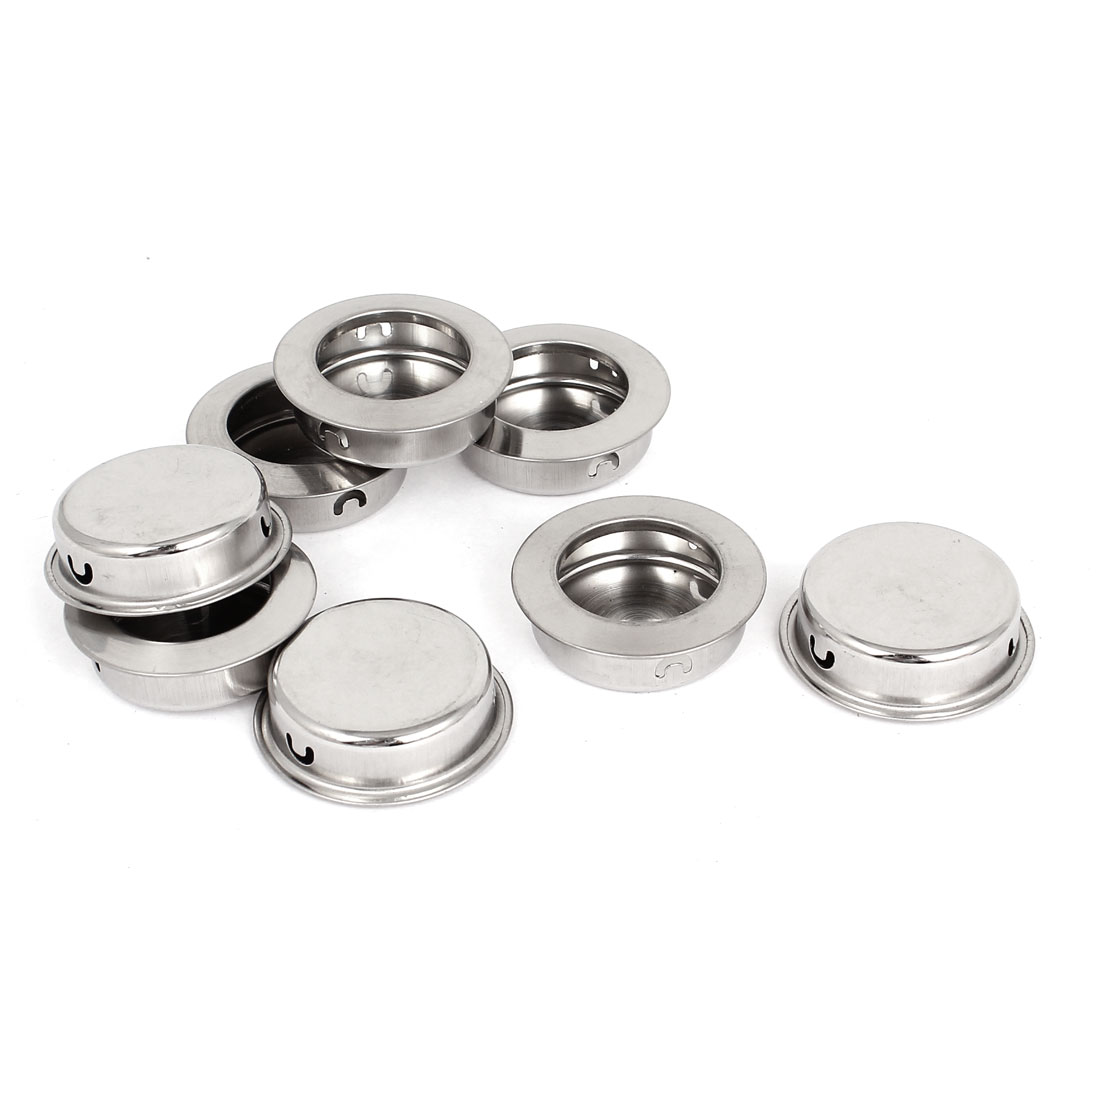 8pcs Stainless Steel Drawer Door Knob Concealed Mounting Round Flush Pull Handle